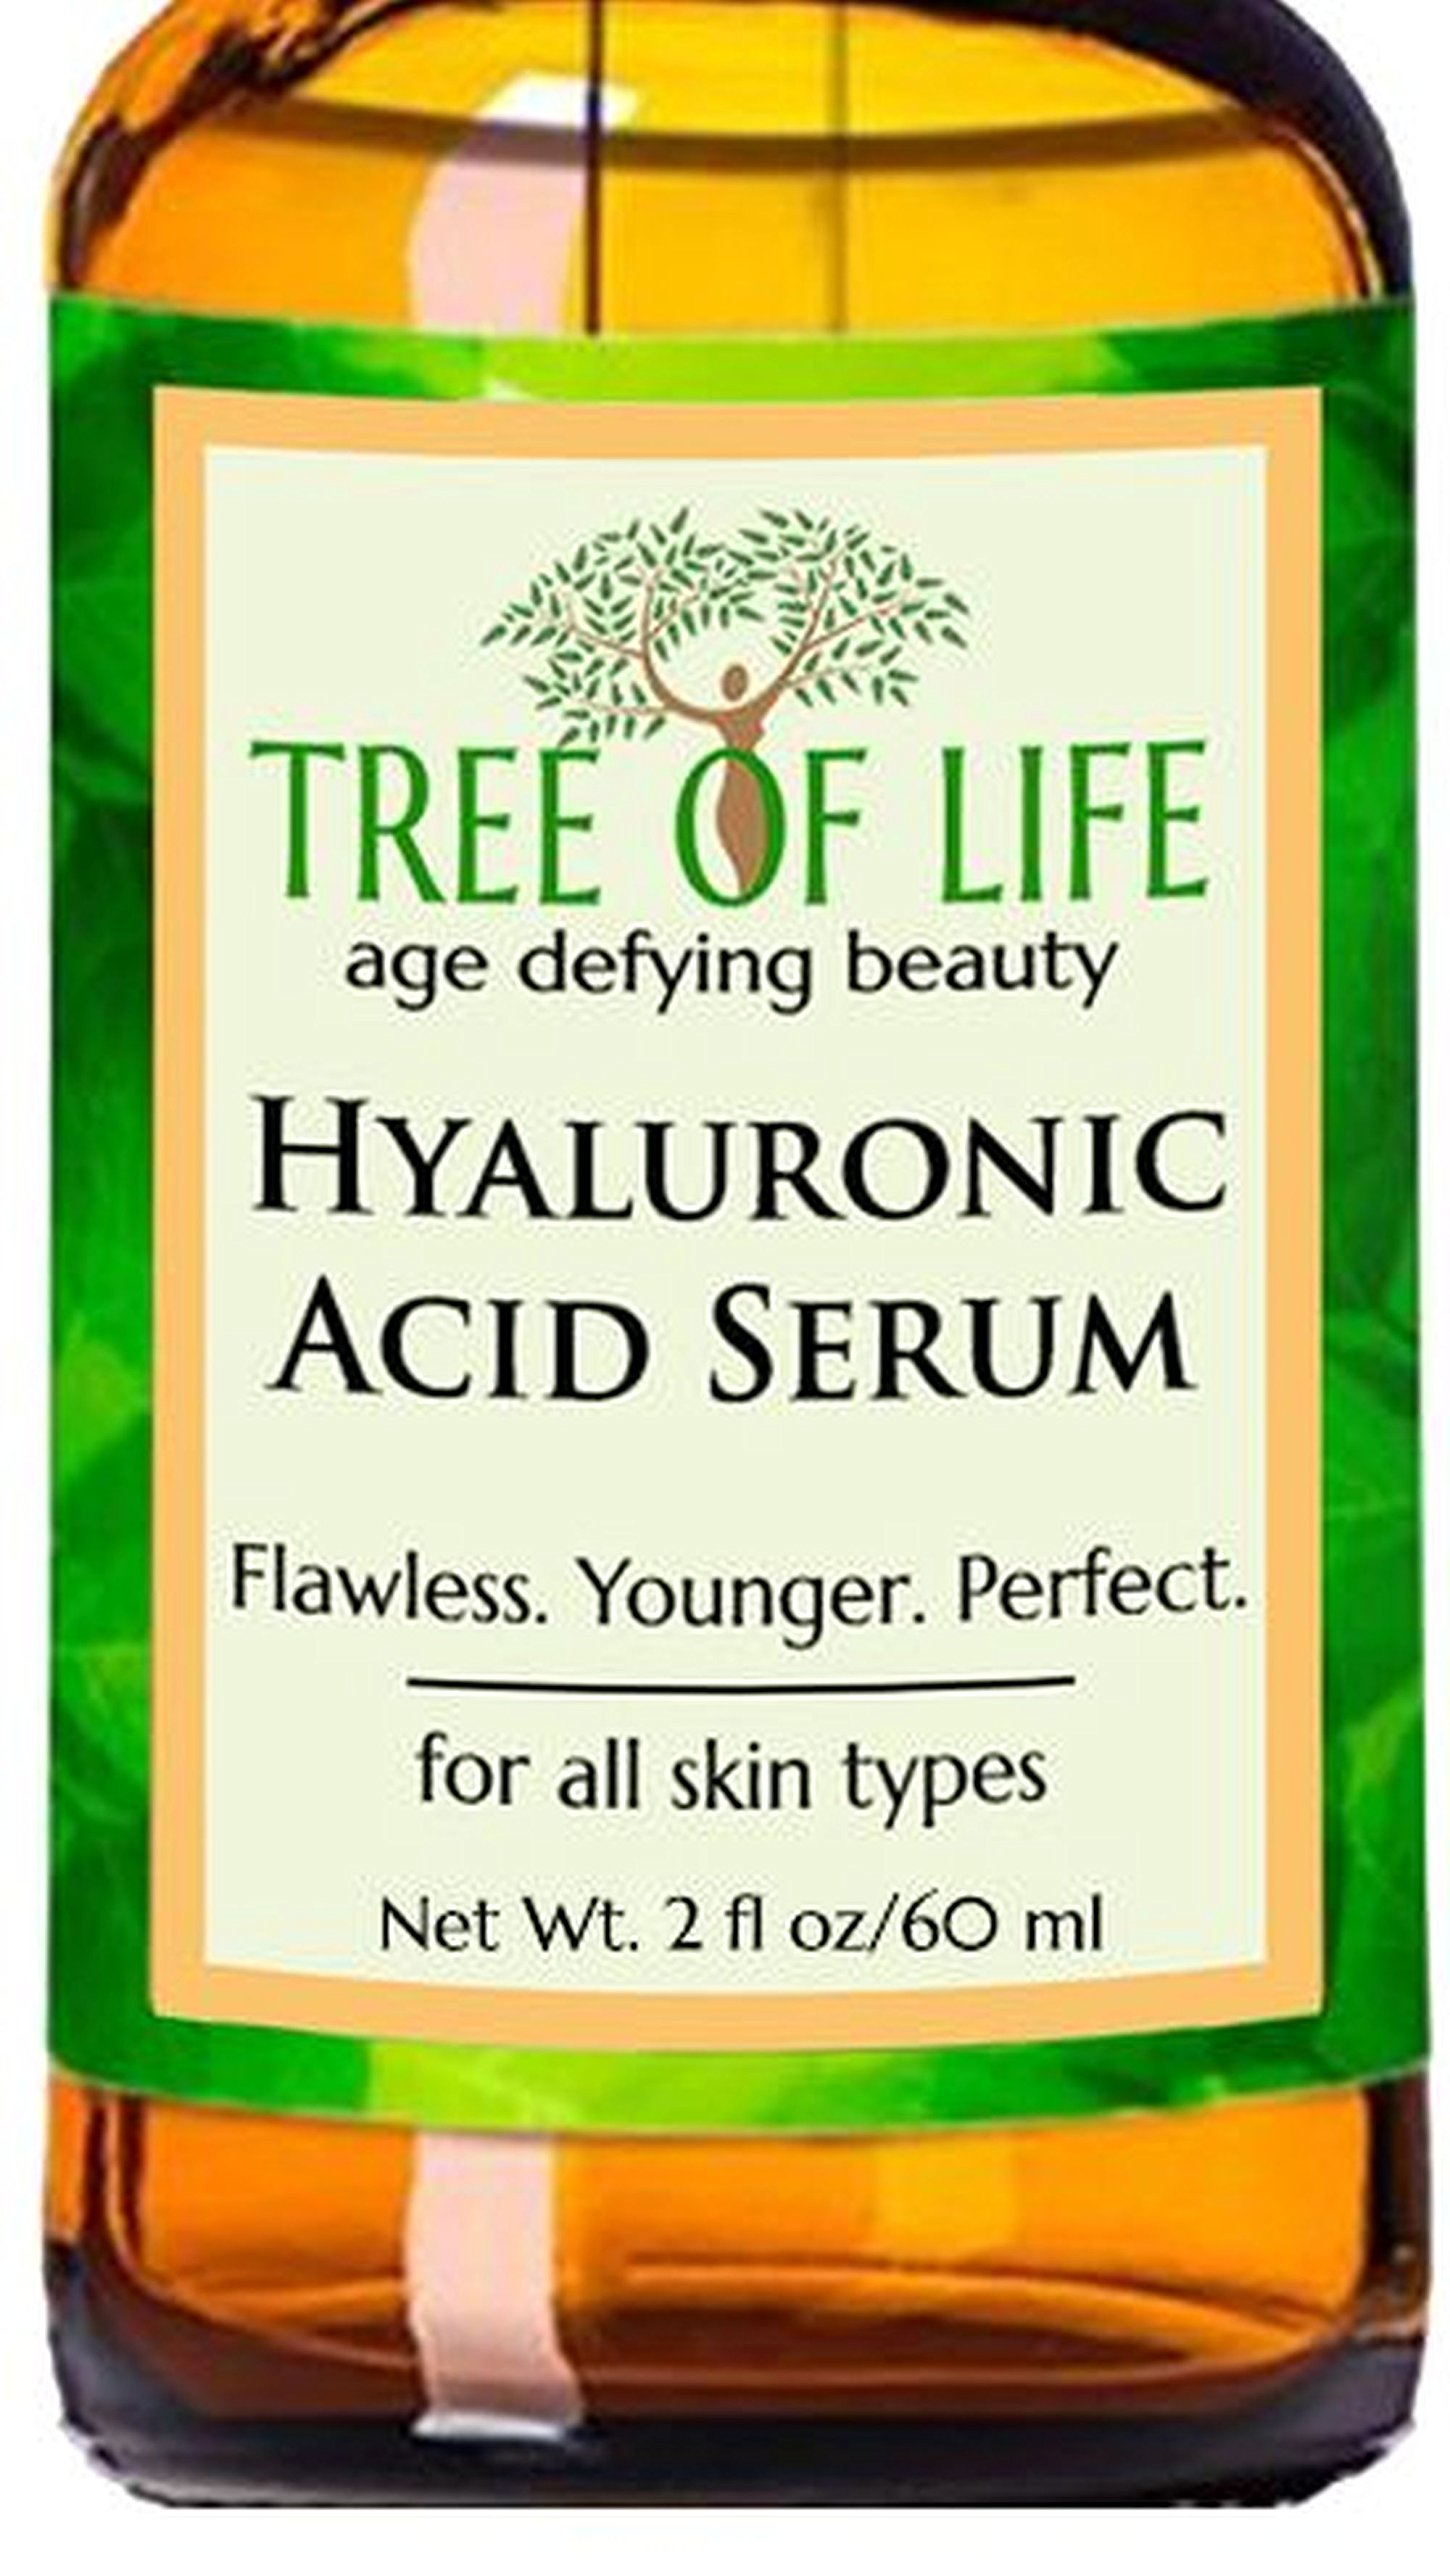 ToLB Hyaluronic Acid Serum for Skin - DOUBLE SIZE 2oz Pure Hyaluronic Acid + Vitamin C and Moisturizing Ingredients - Paraben Free, Vegan - Best Hyaluronic Acid for Facial Care 2 fl oz